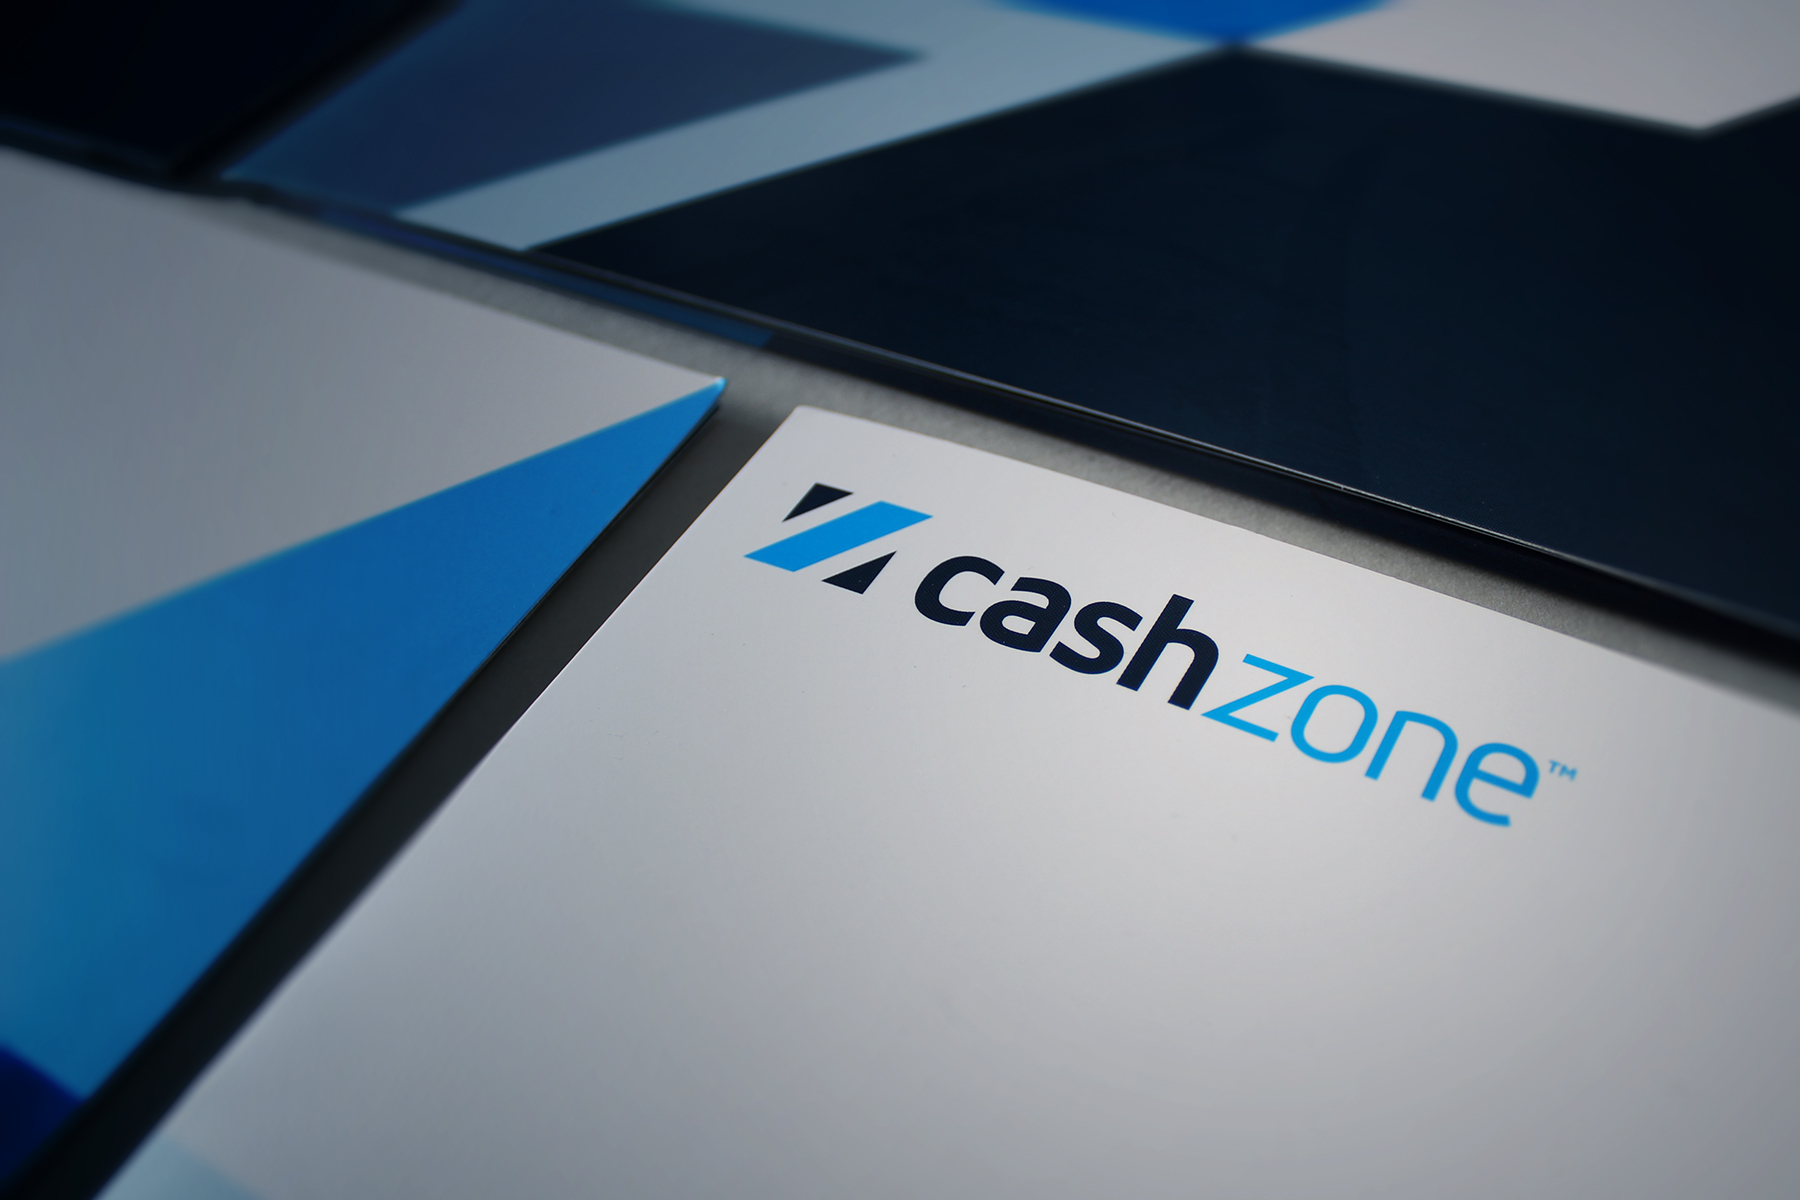 Our remit was to enhance brand equity for a retail financial brand